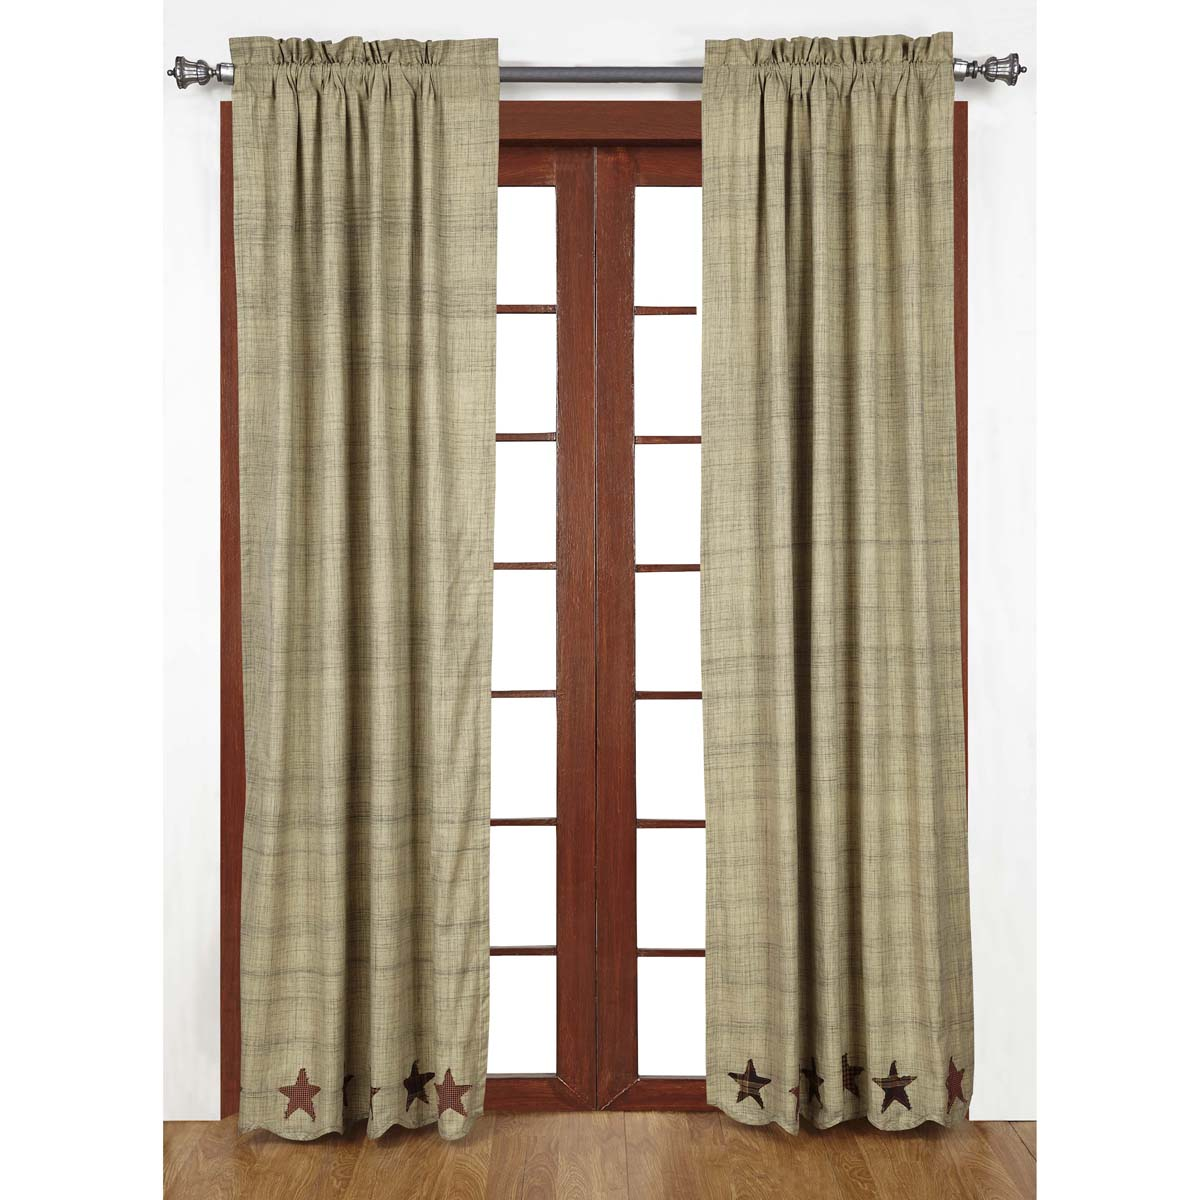 ABILENE STAR Long Panels - Set of 2 - 84x40 - Burgundy/Tan/Brown - VHC Brands